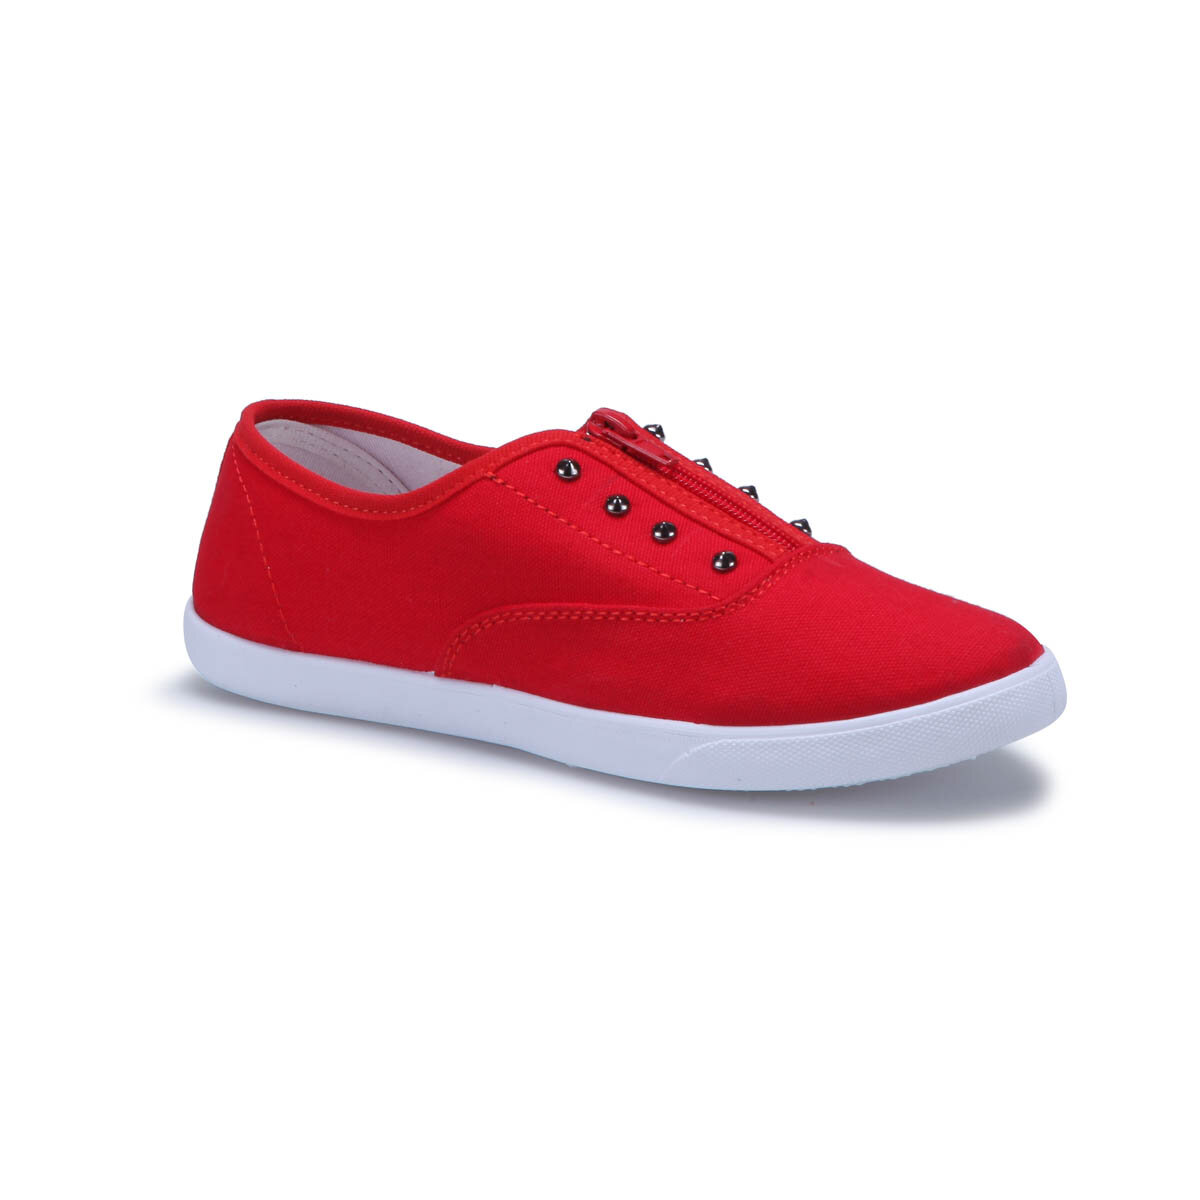 FLO U2300 Red Women Slip On Shoes Carmens